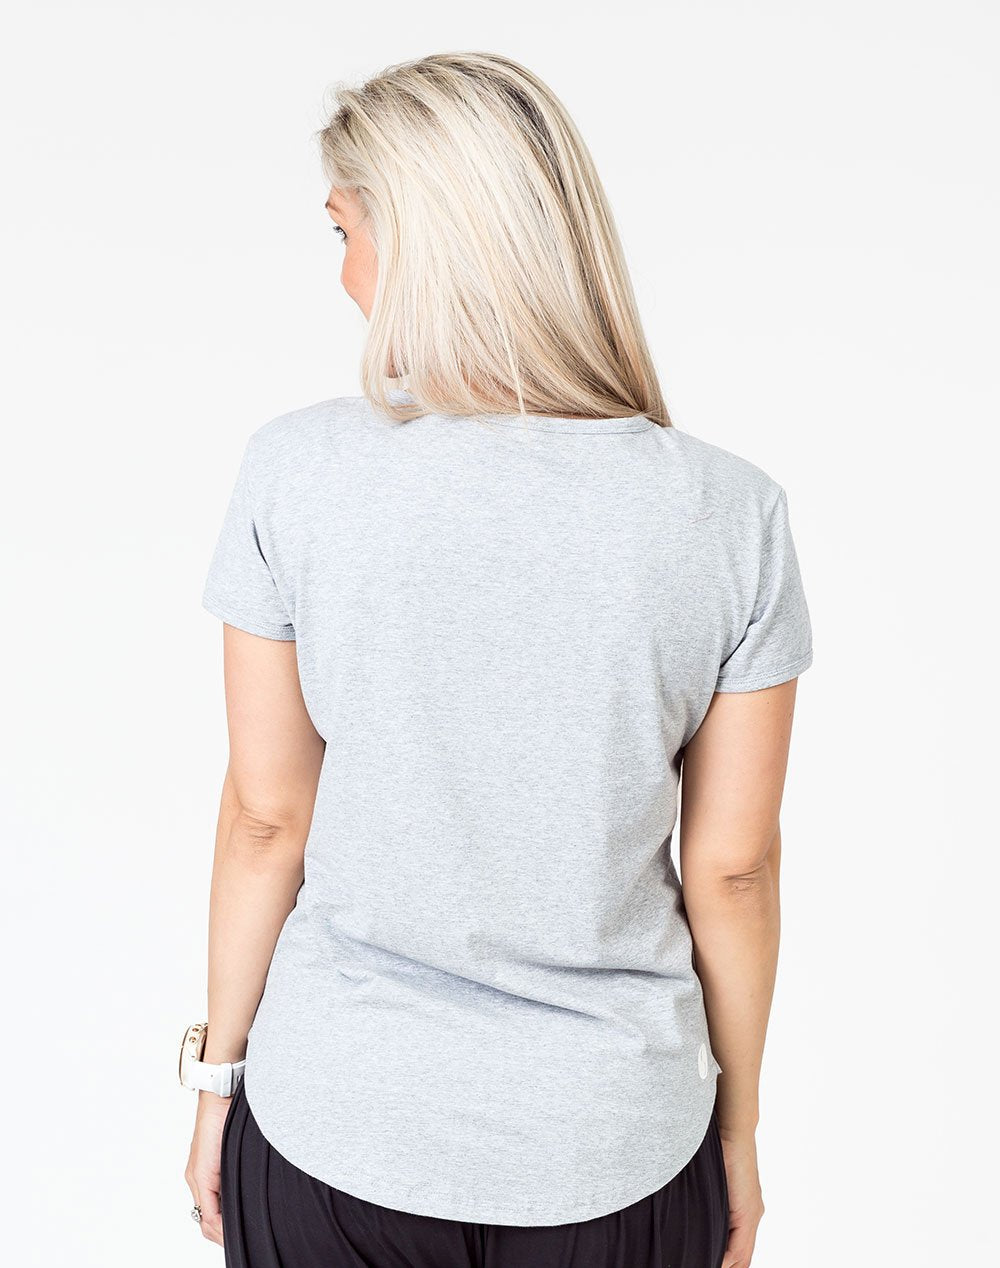 back view of a mom in a gray scoop breastfeeding t-shirt